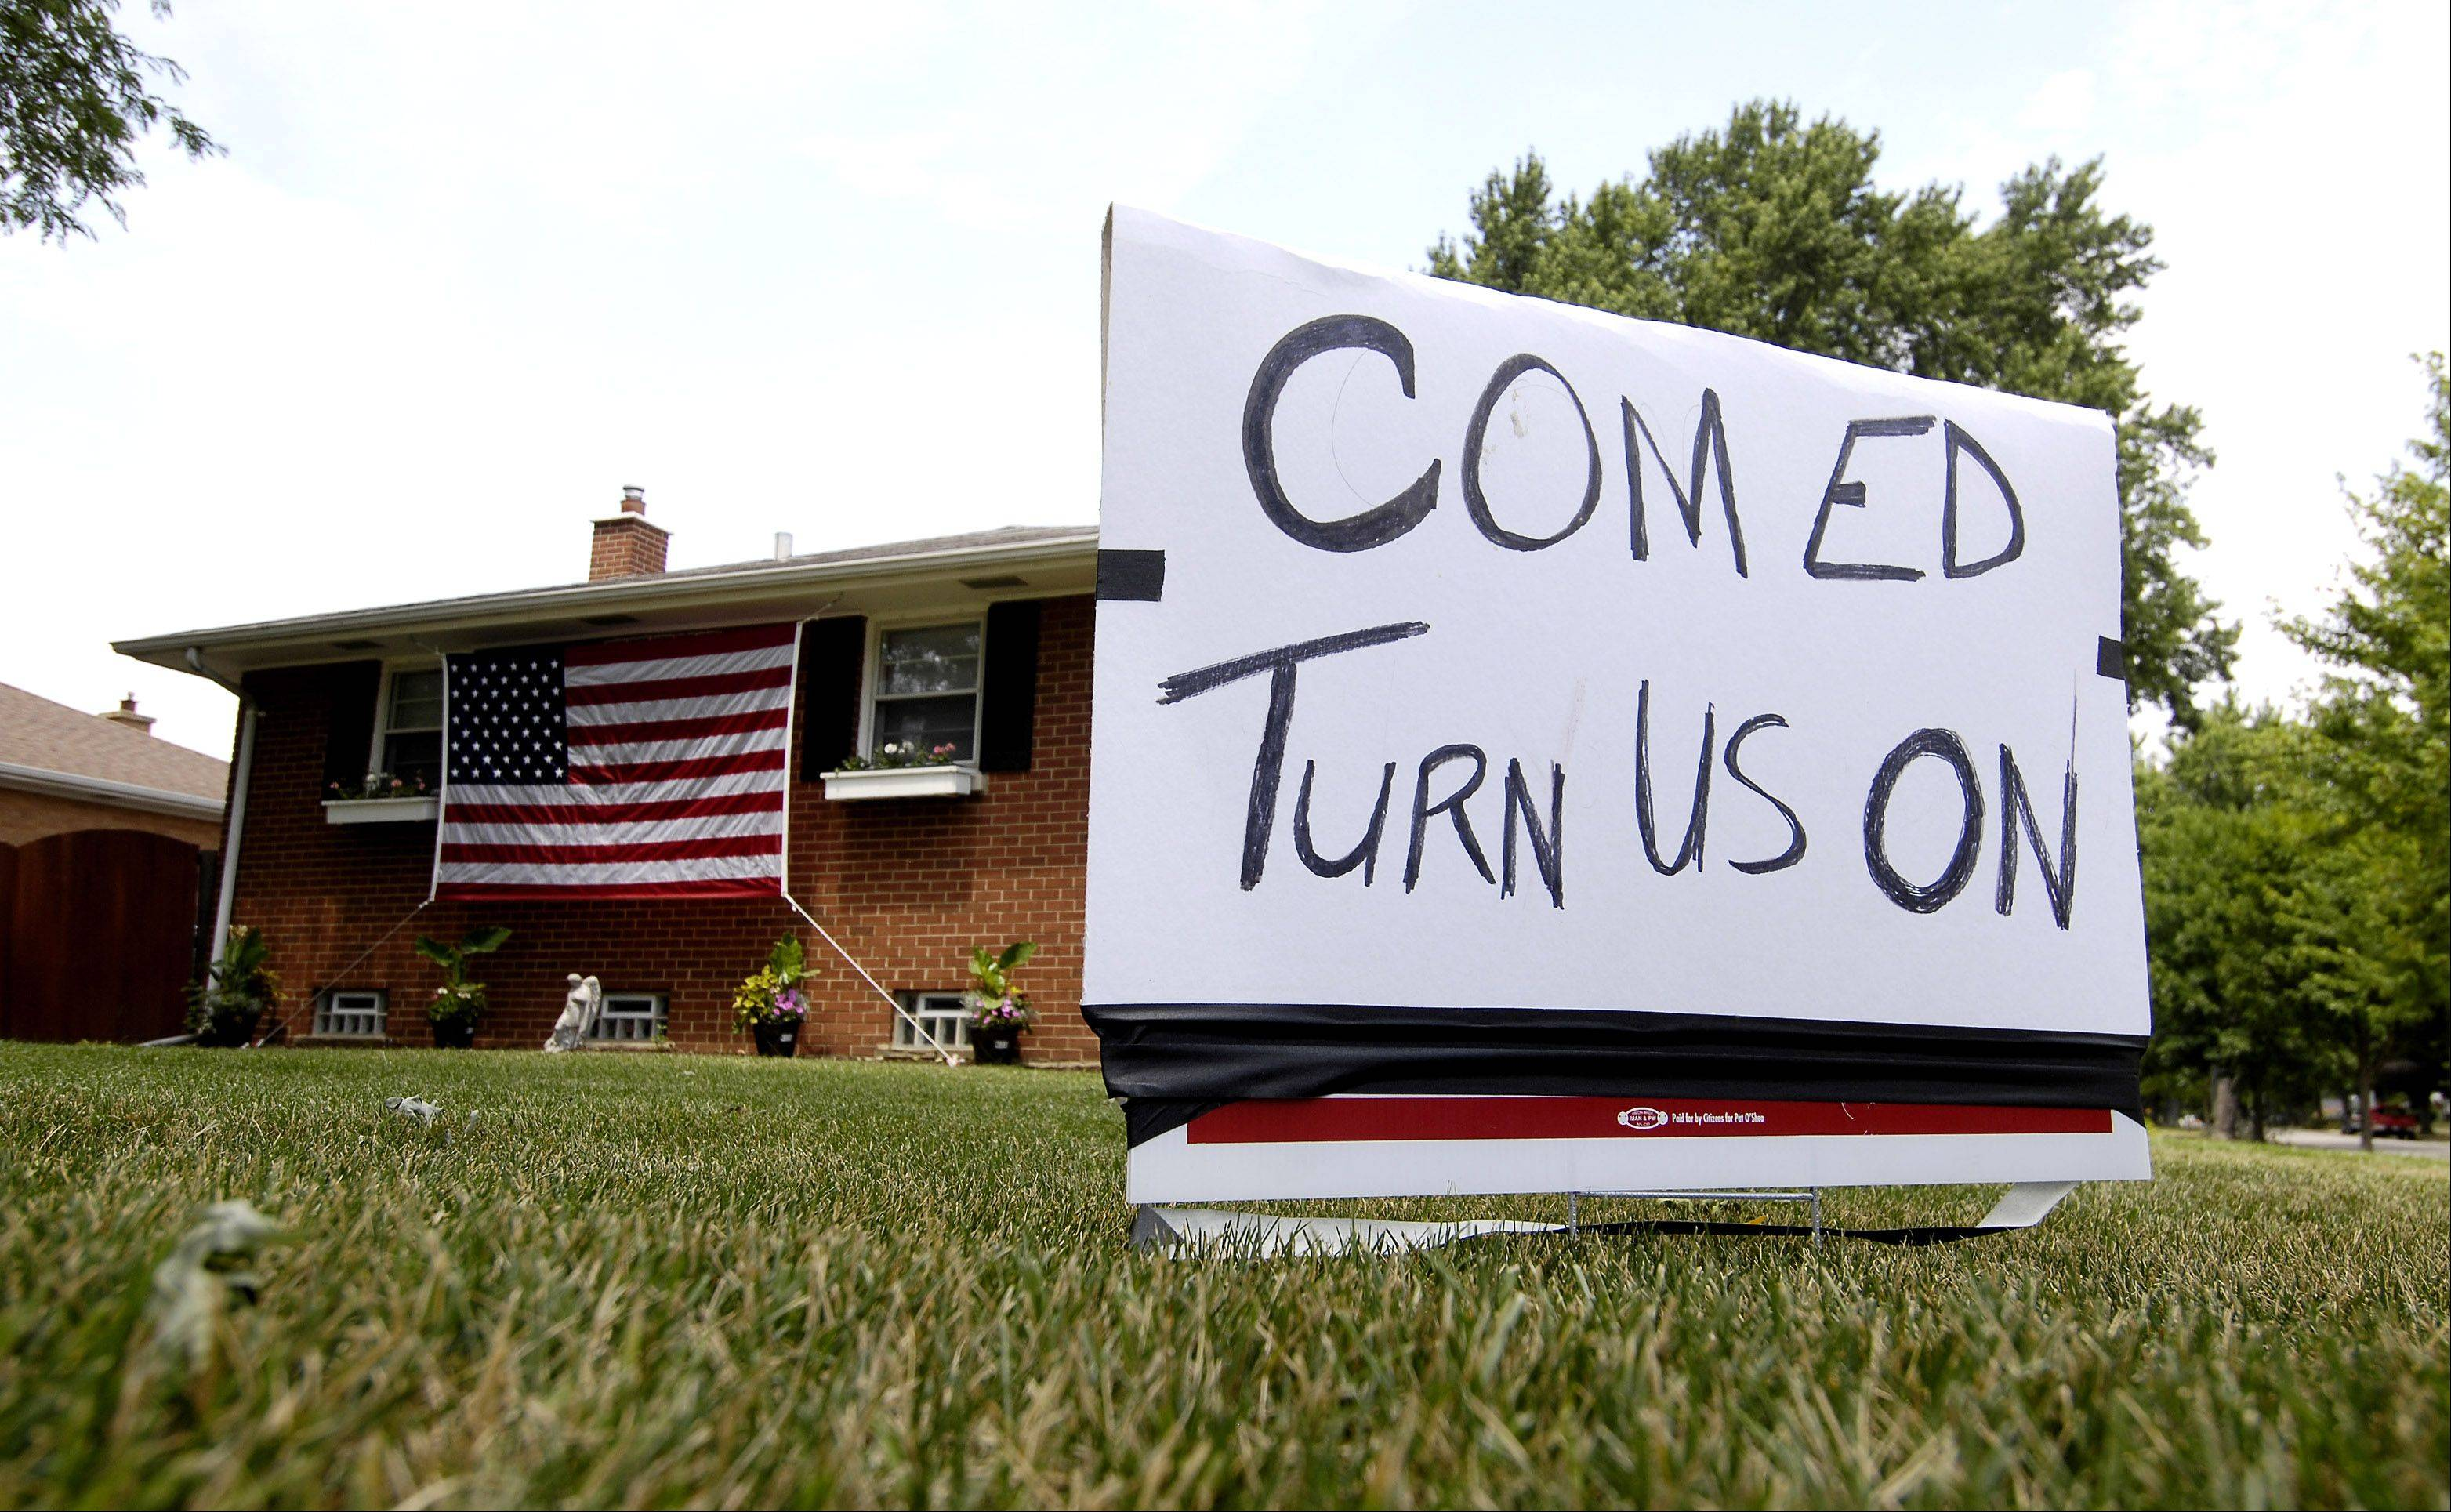 Residents in a home at the intersection of Madison Street and Lewis Avenue in Lombard posted a plea for ComEd to restore power to their street.